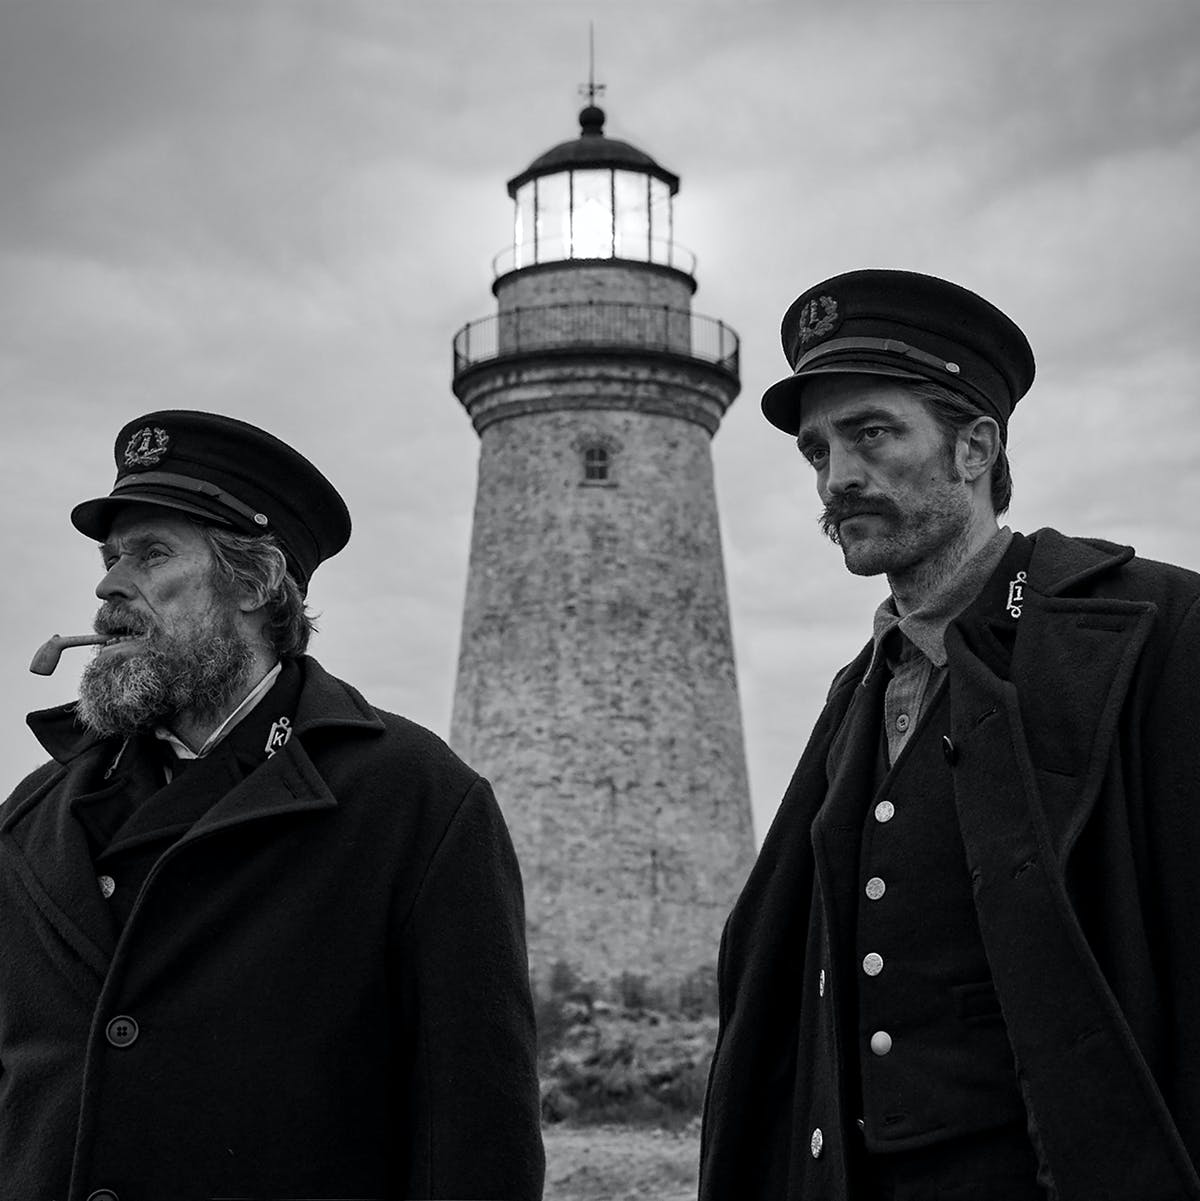 'The Lighthouse' is an unforgettable nightmare of tentacle sex and farts